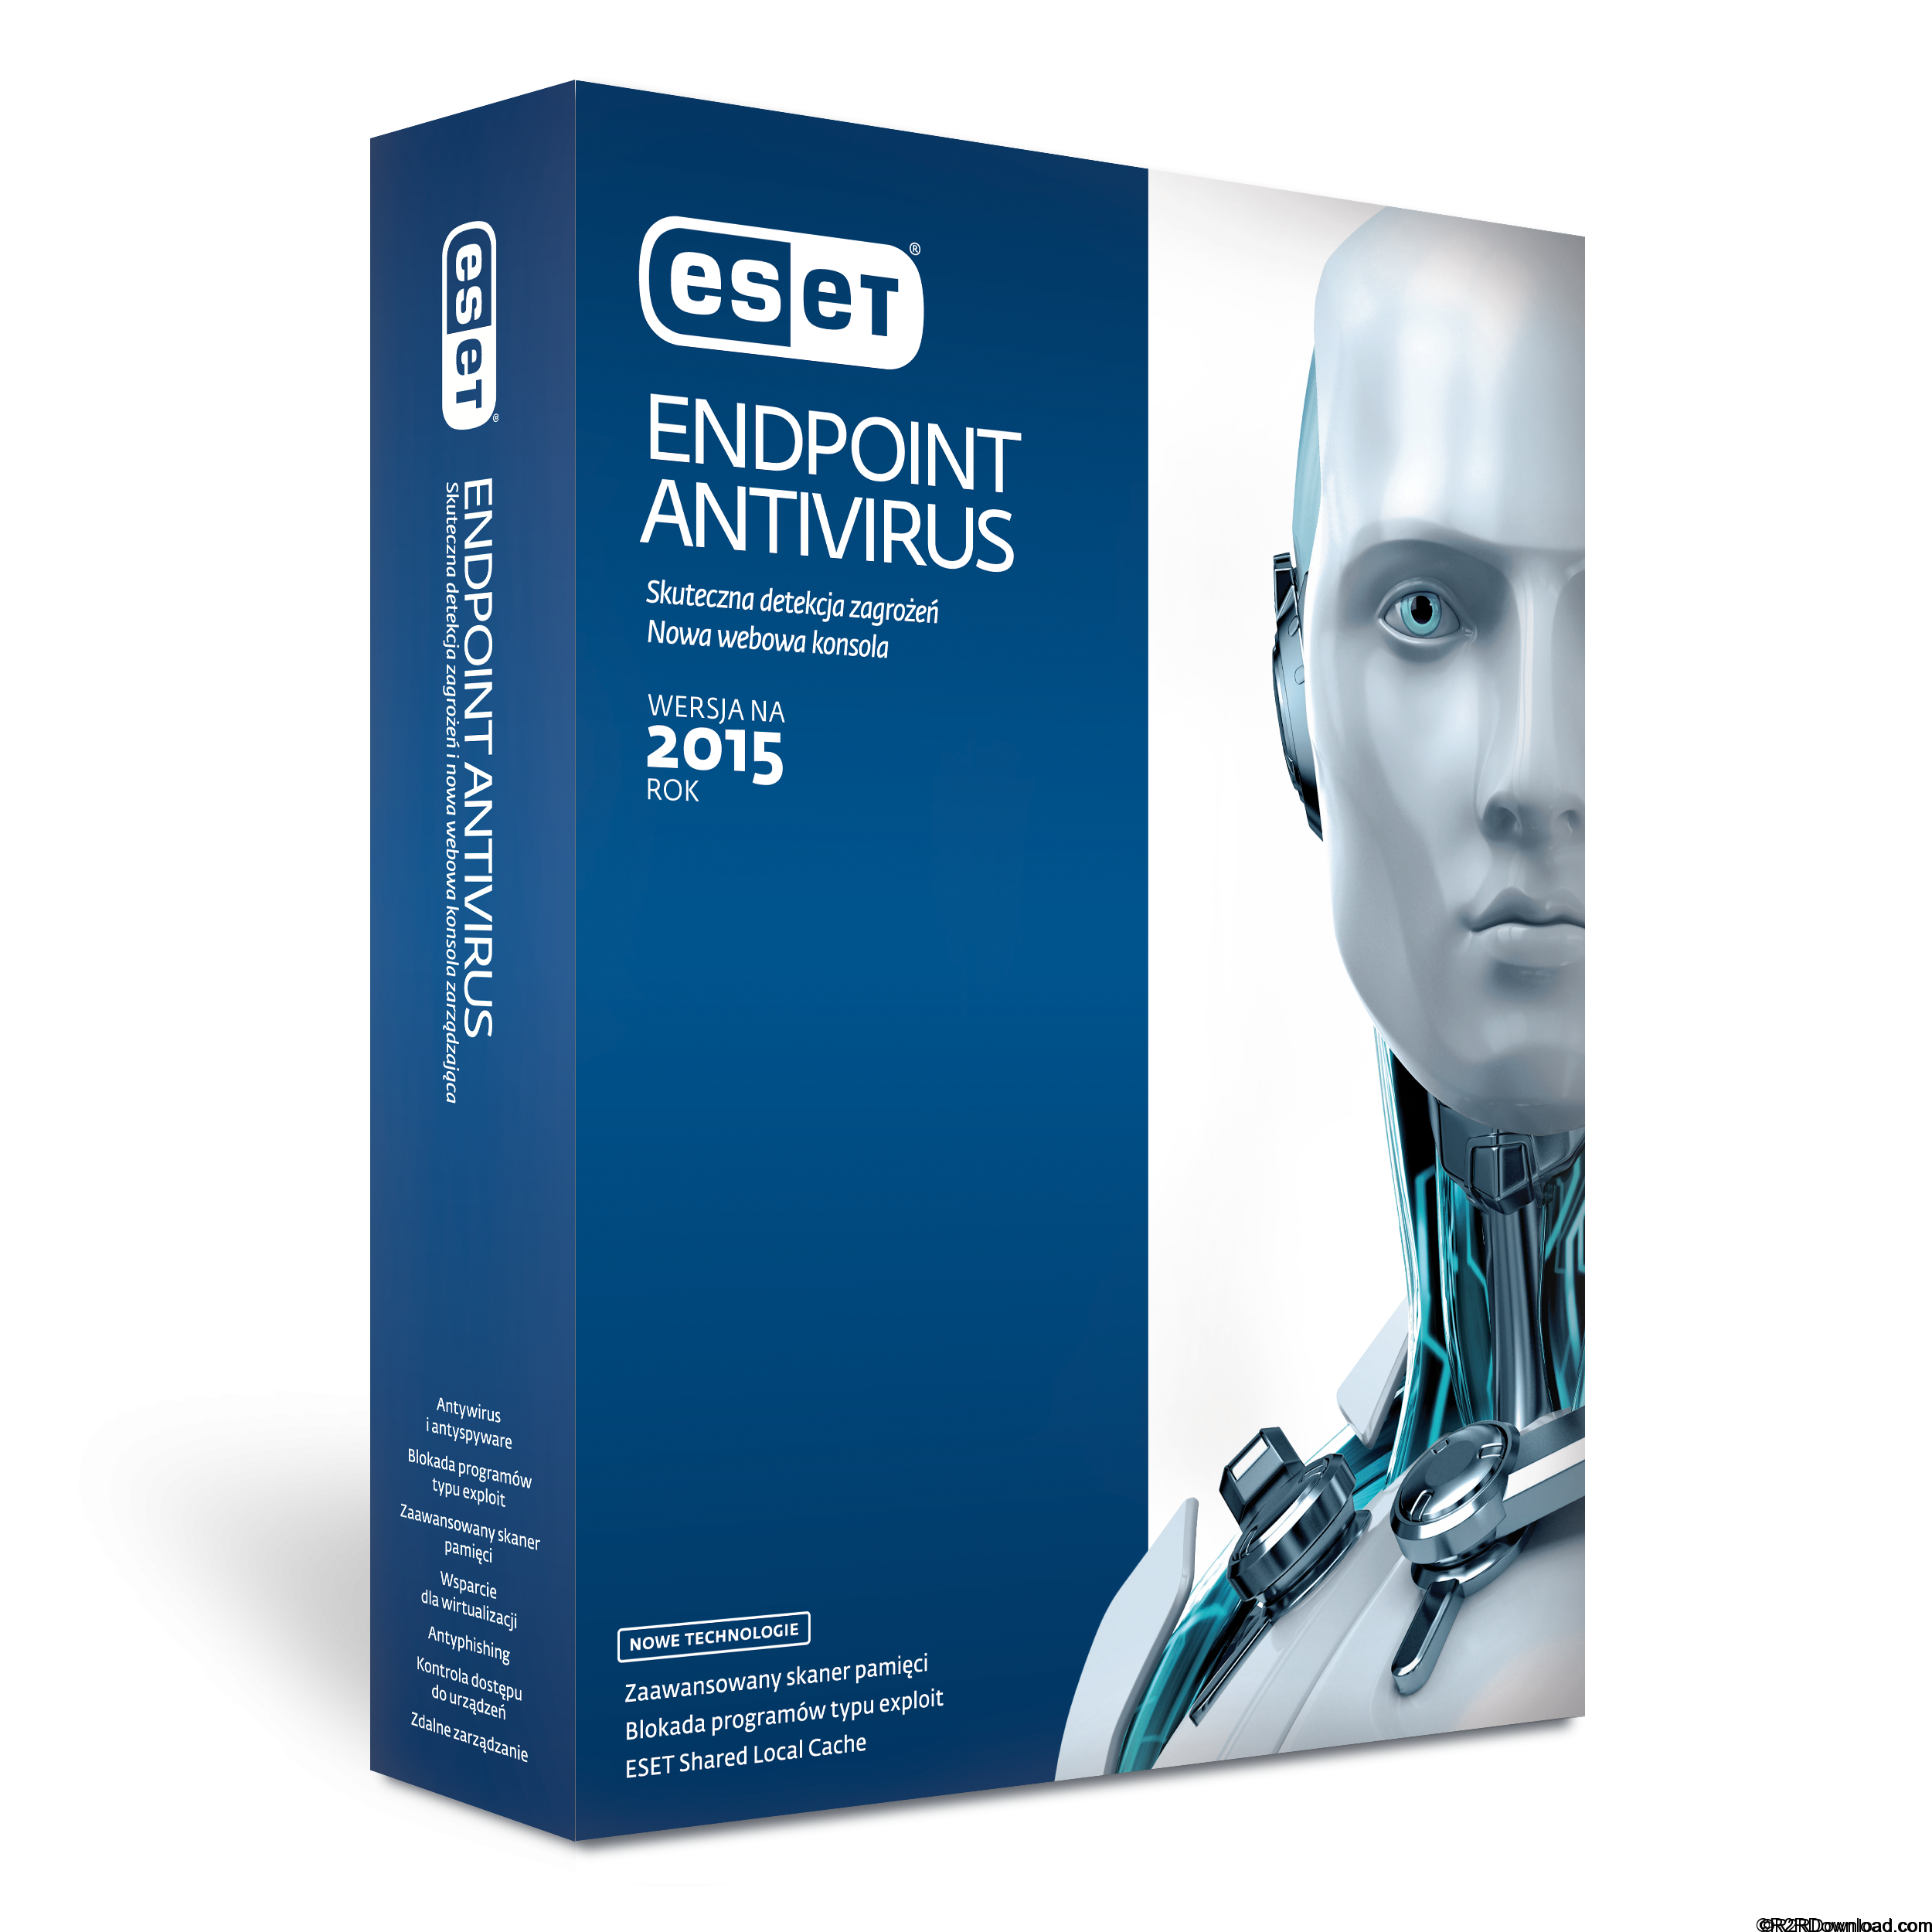 ESET Endpoint Antivirus 6.5 Free Download